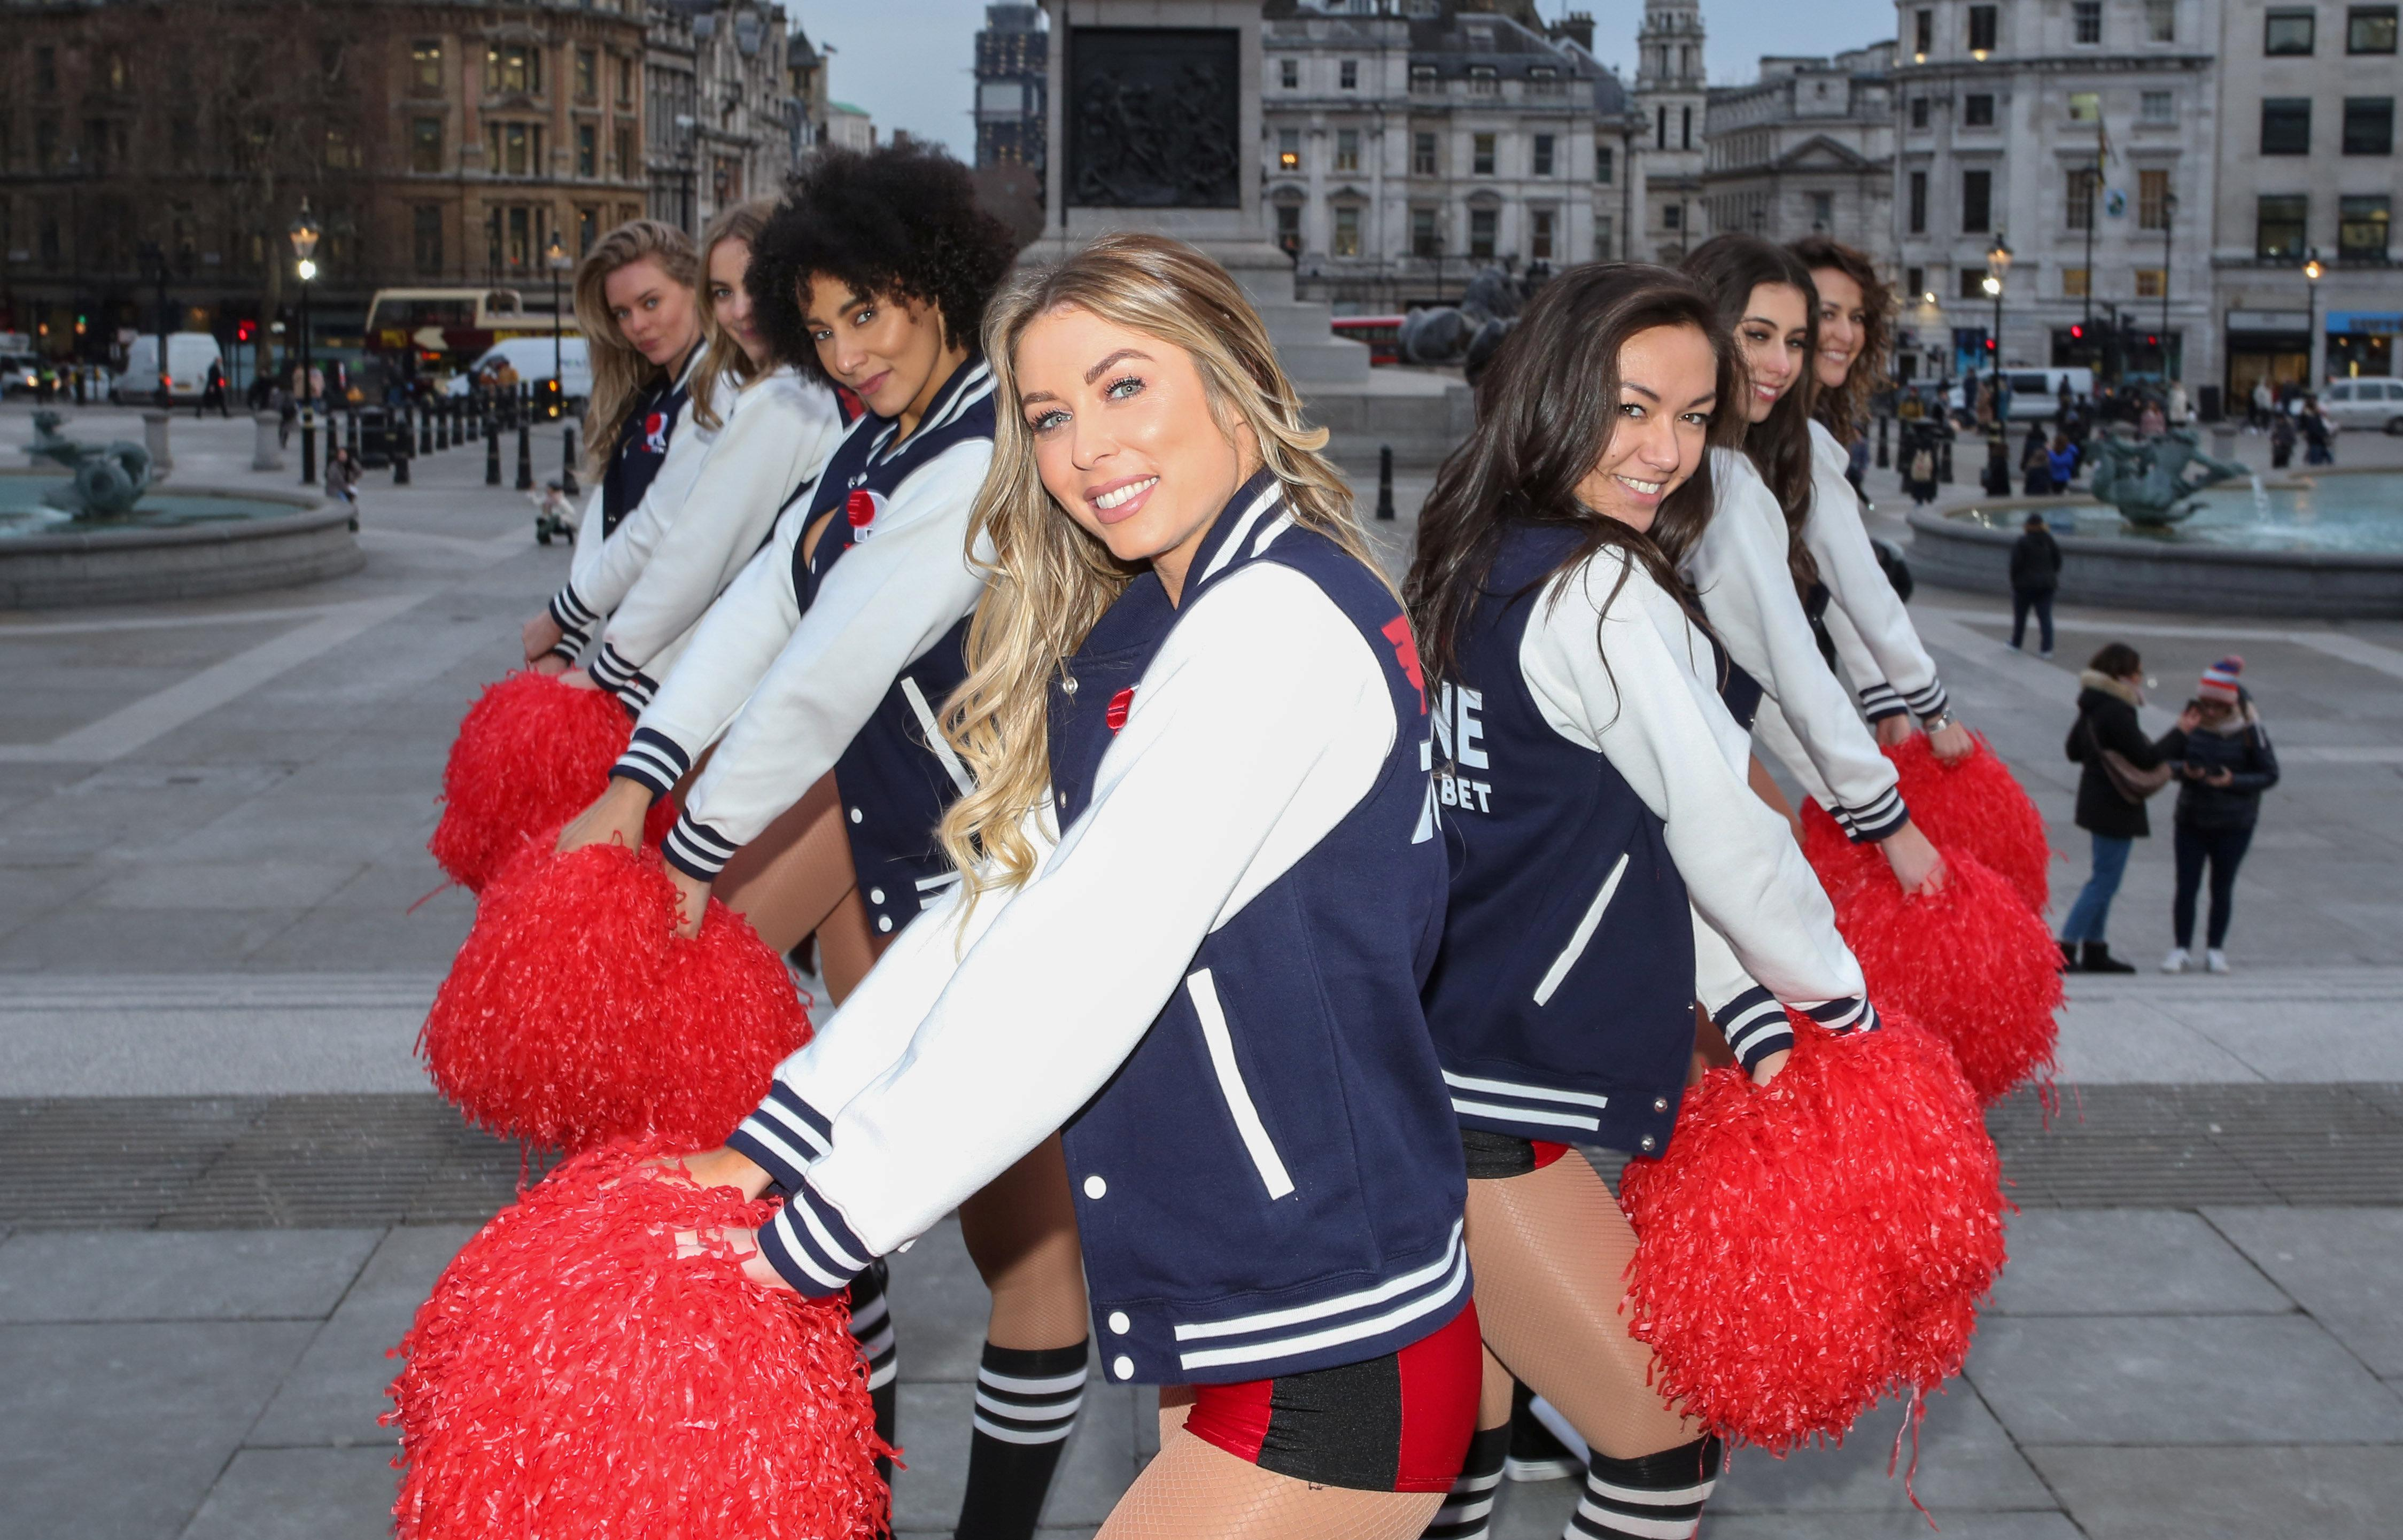 Redzone cheerleaders will perform at Super Bowl parties across the nation